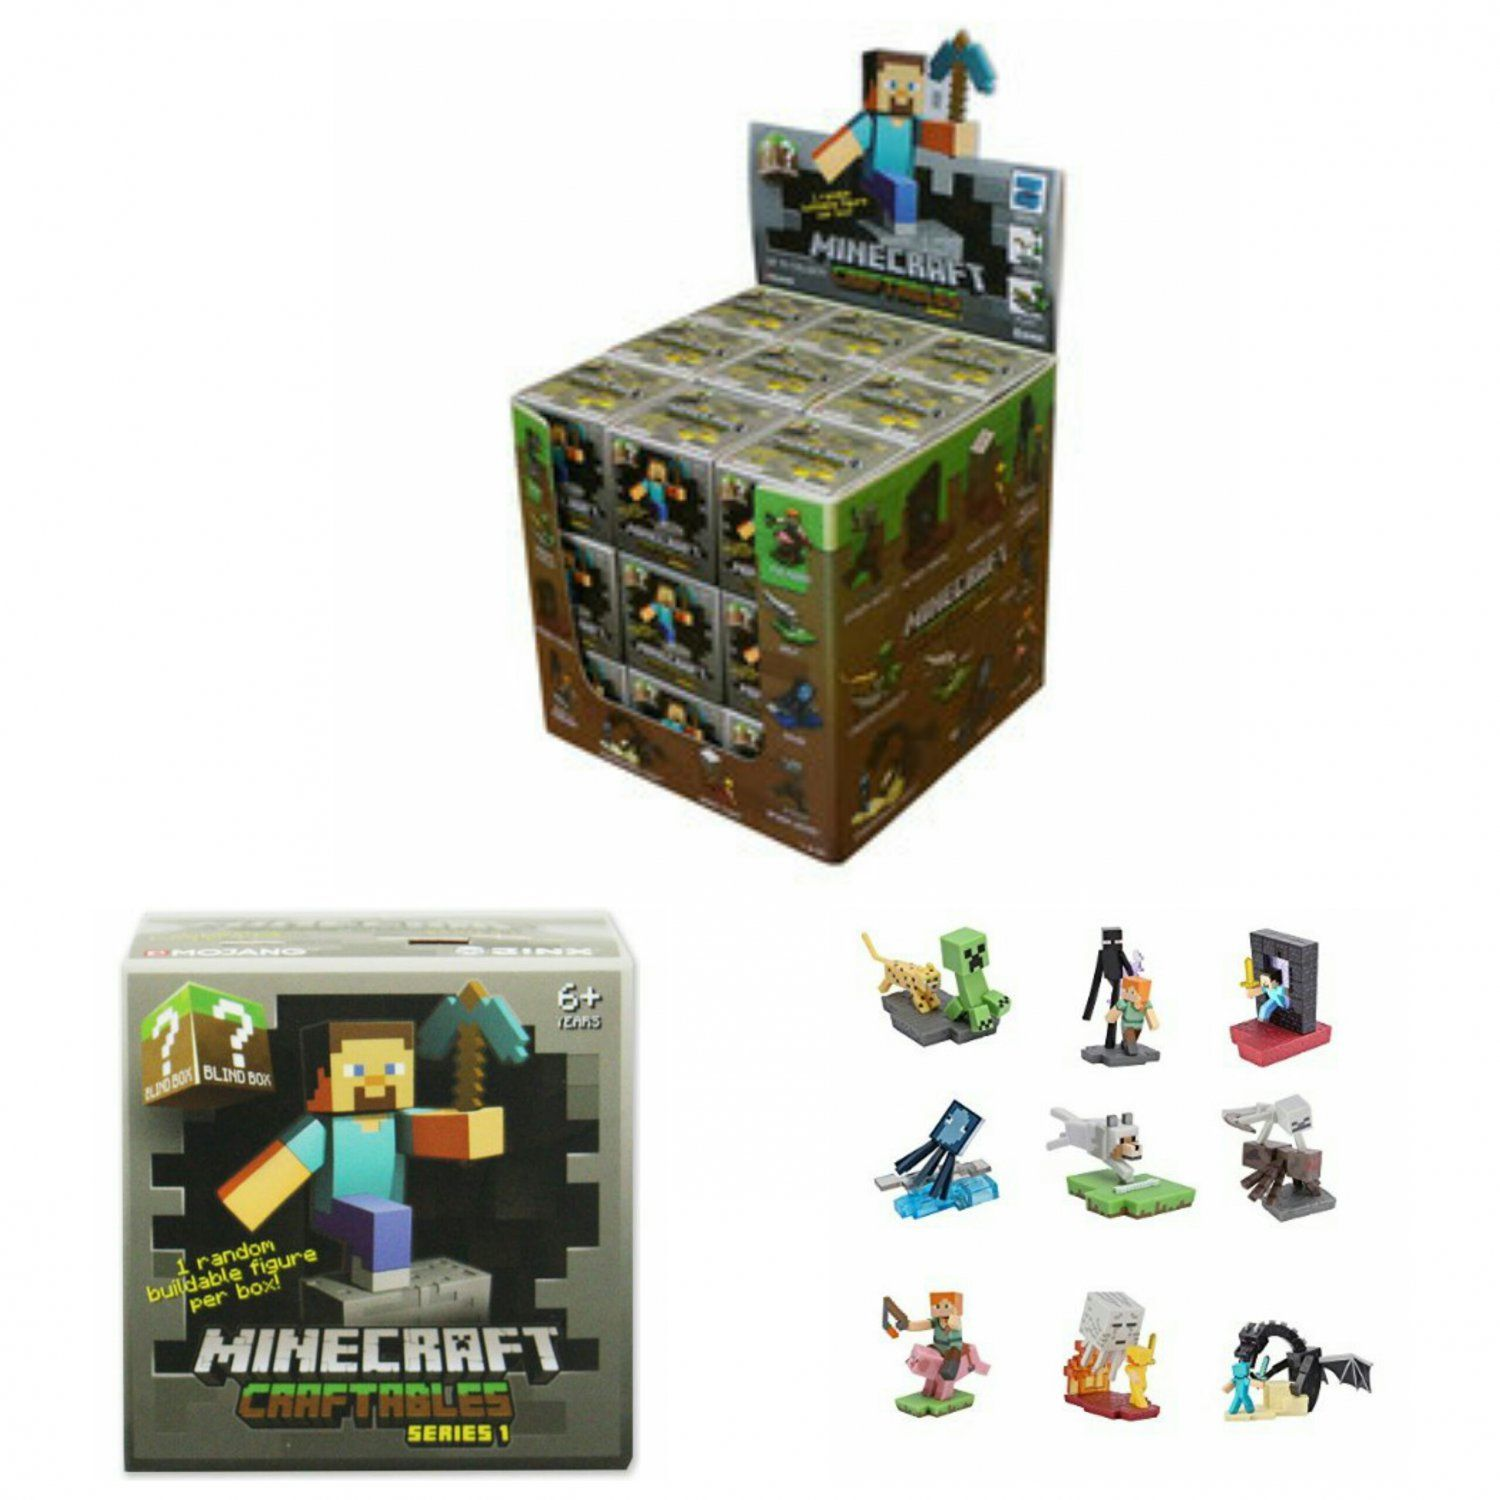 Official Minecraft Craftables Series 1 Random Buildable